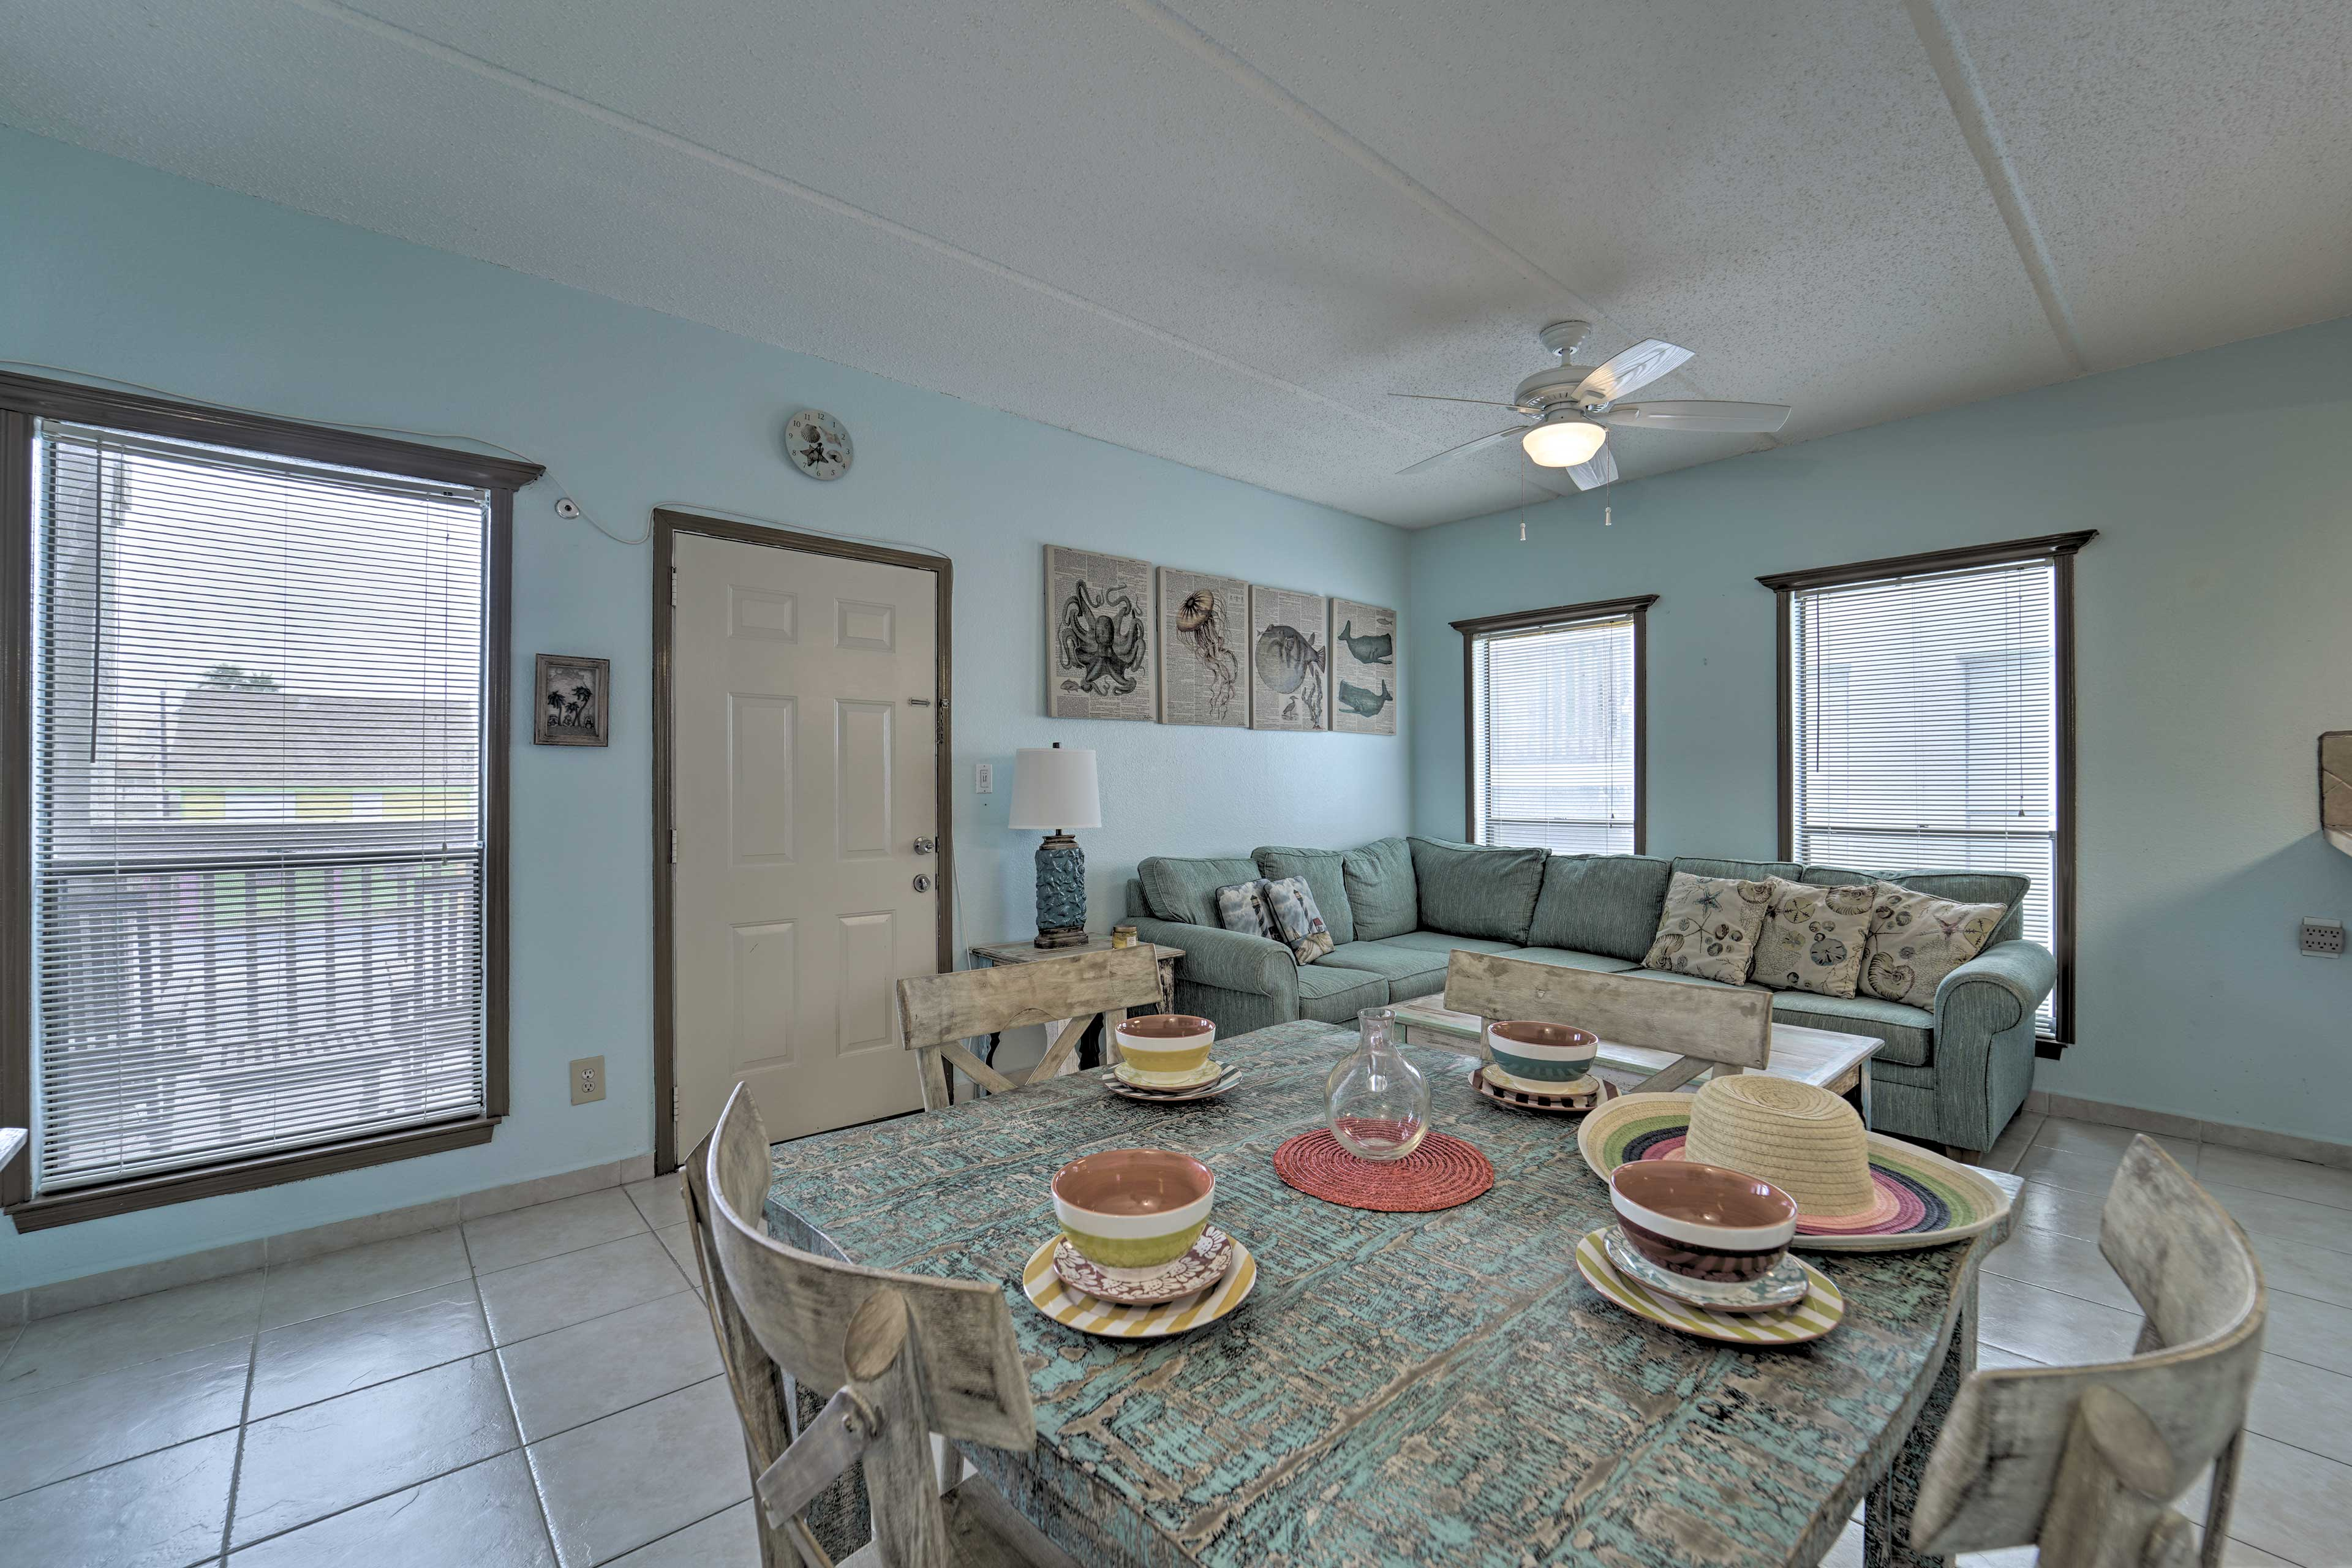 Enjoy meals from the kitchen at the dining table.